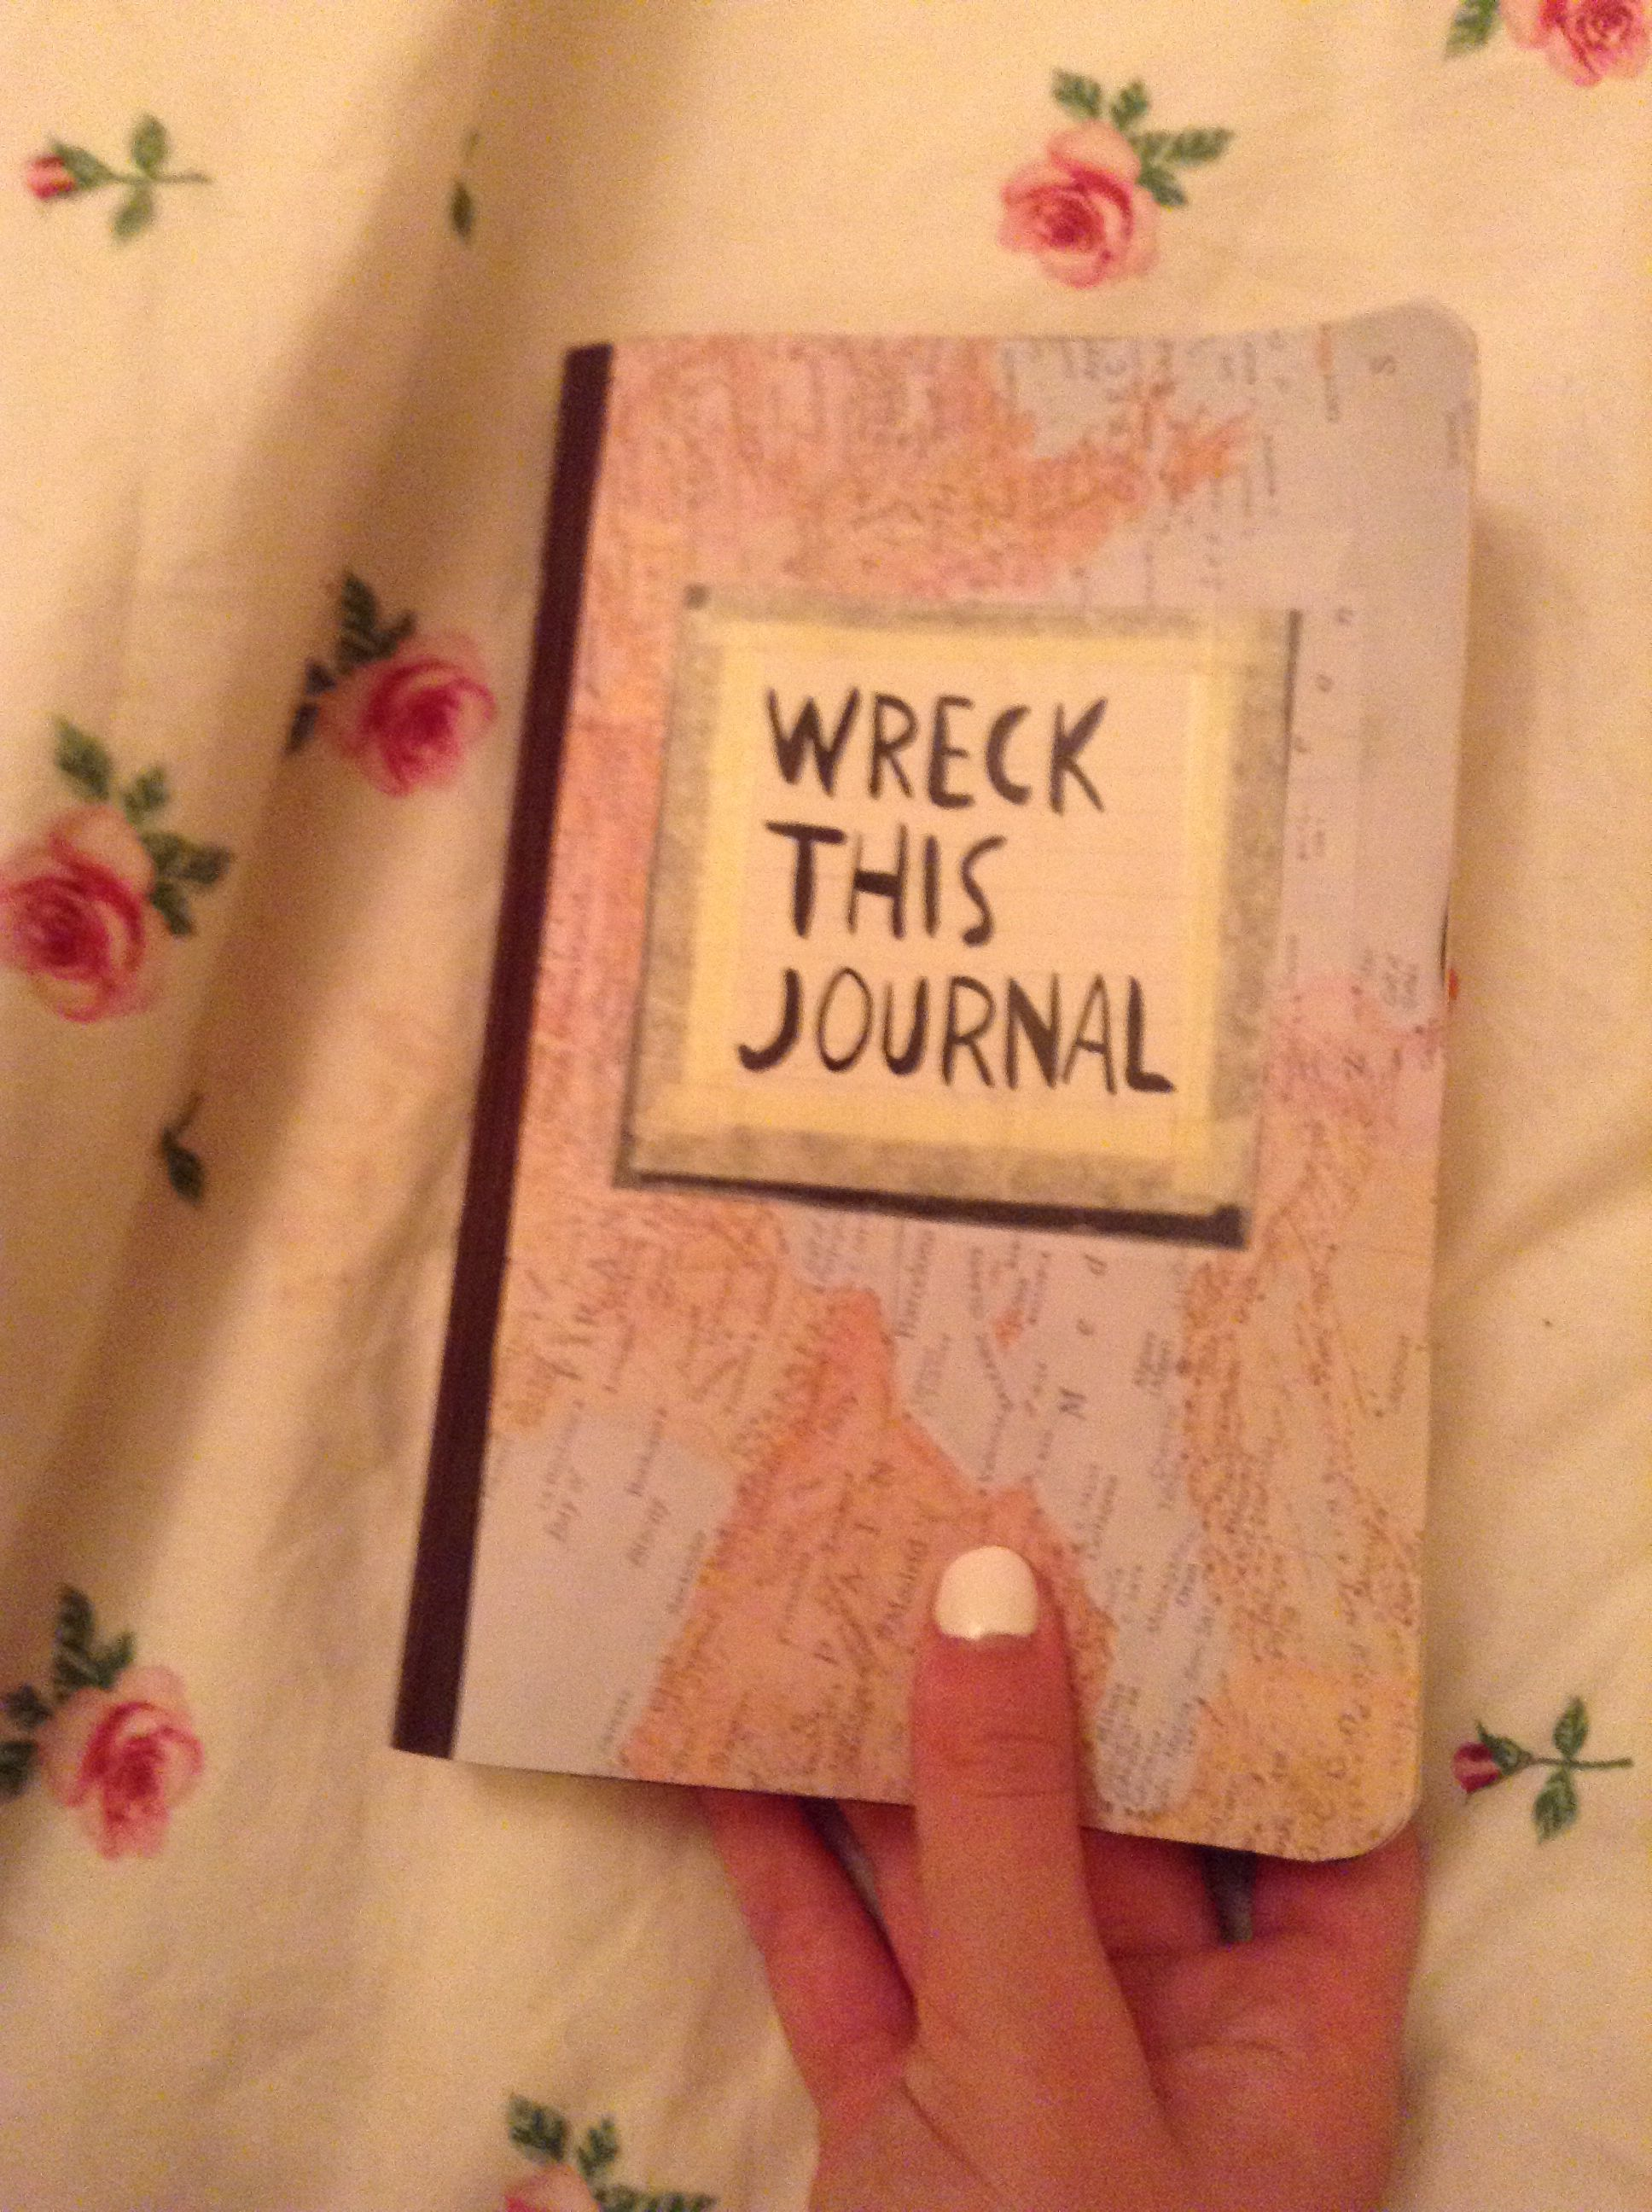 Wreck This Journal Book Cover Ideas : My wreck this journal cover